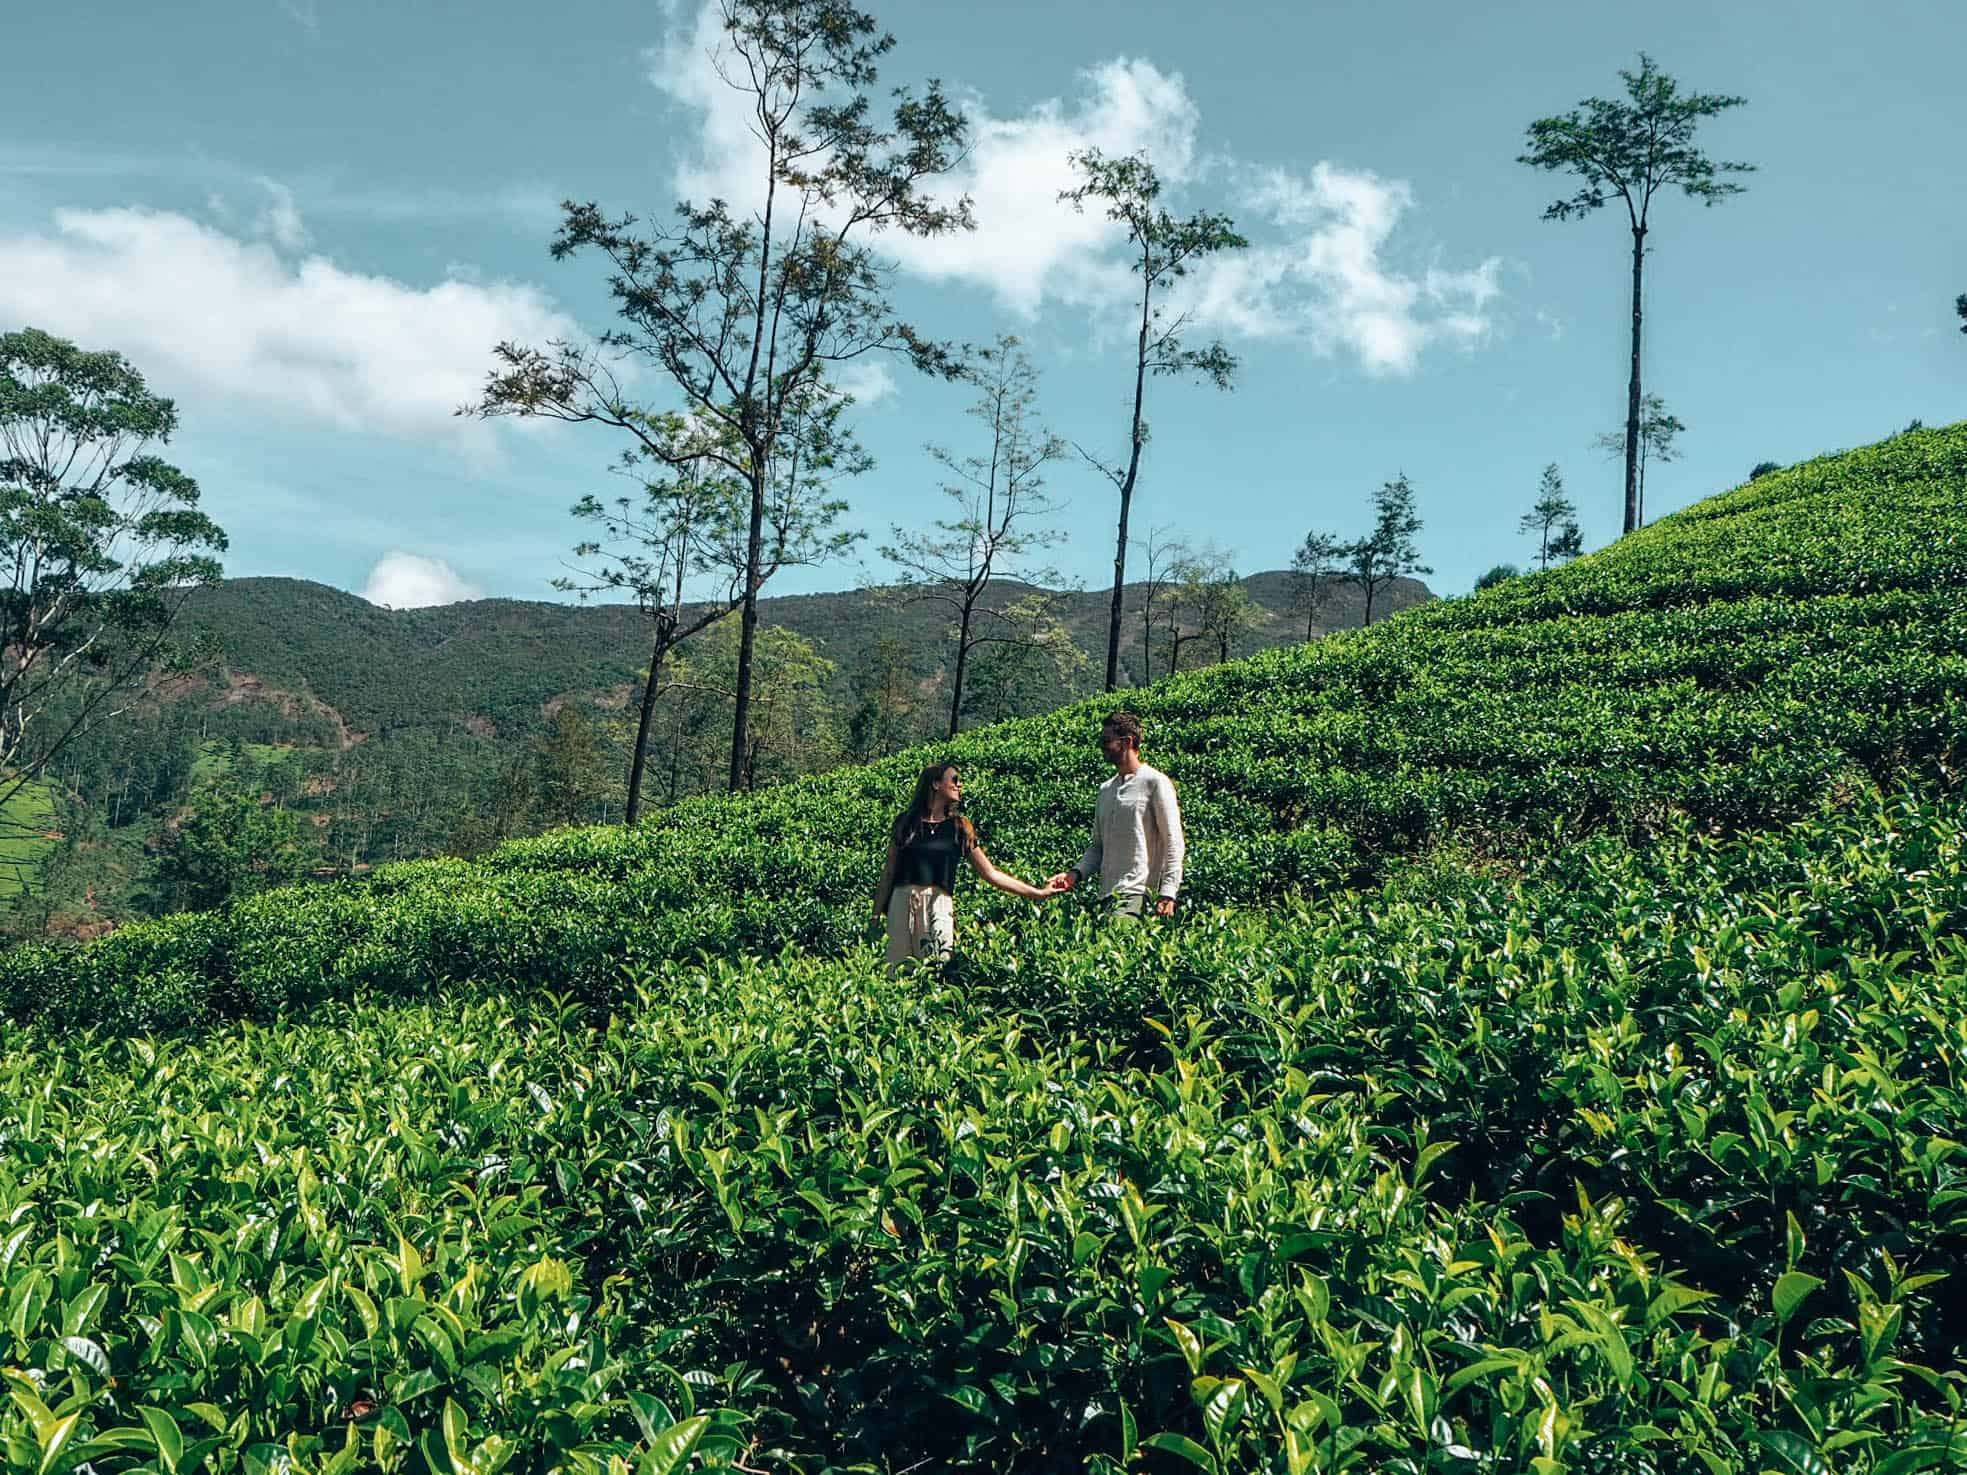 Couple walking in tea field at Damro plantation in Nuwara Eliya